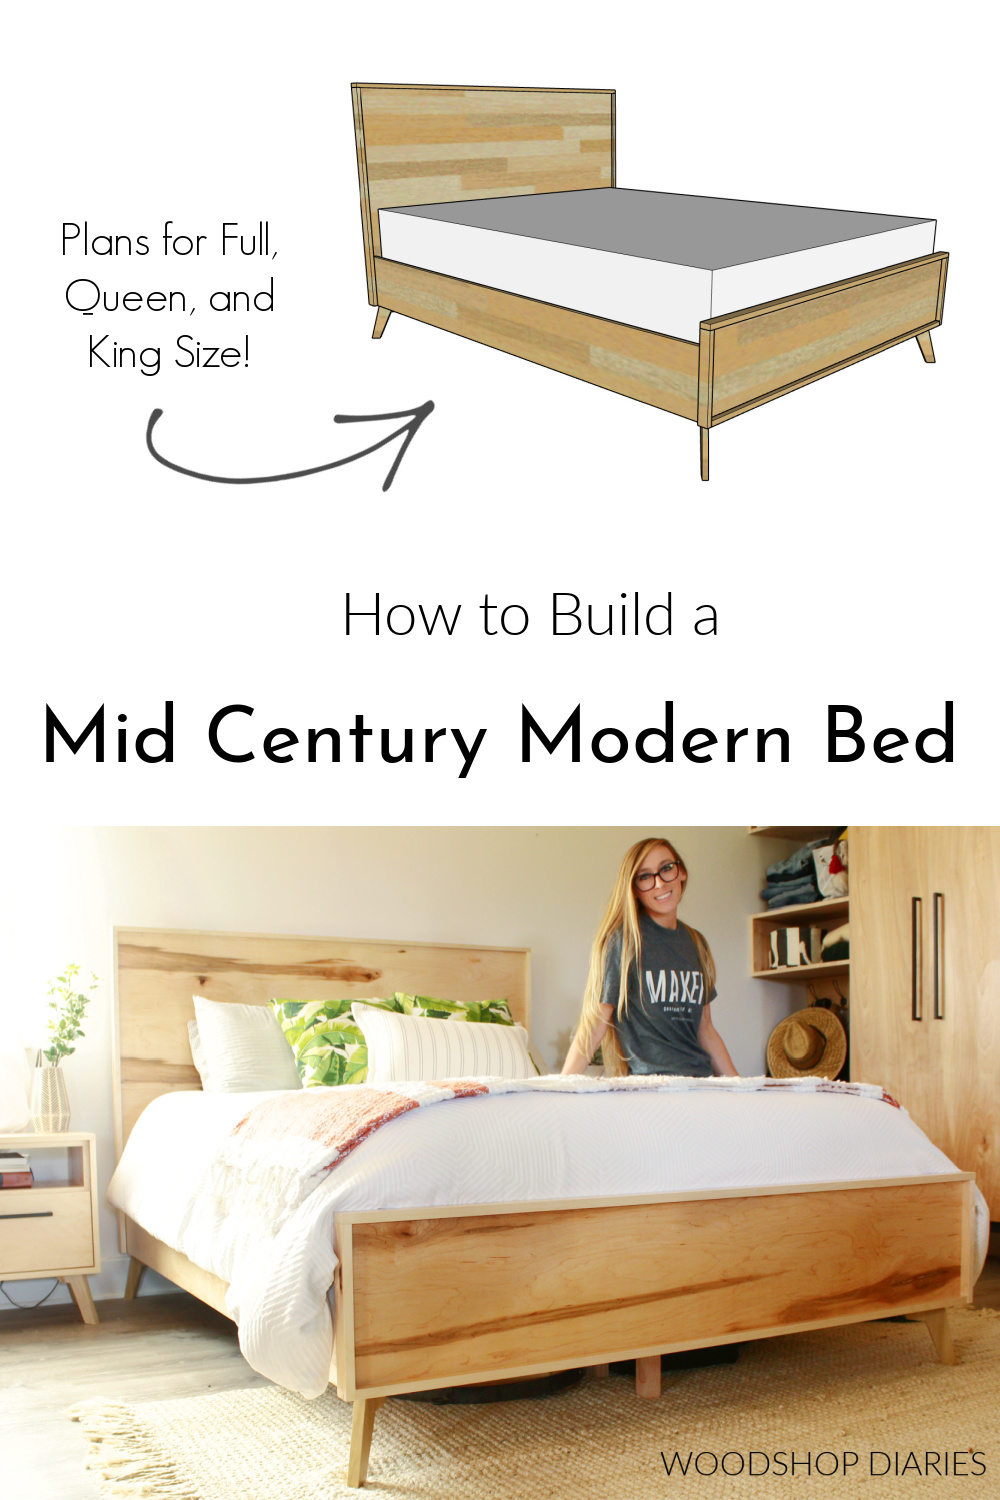 """Pinterest collage image with modern finished bed at bottom and computer diagram at top with text """"how to build a mid century modern bed"""" and """"plans for full, queen, and king size"""""""